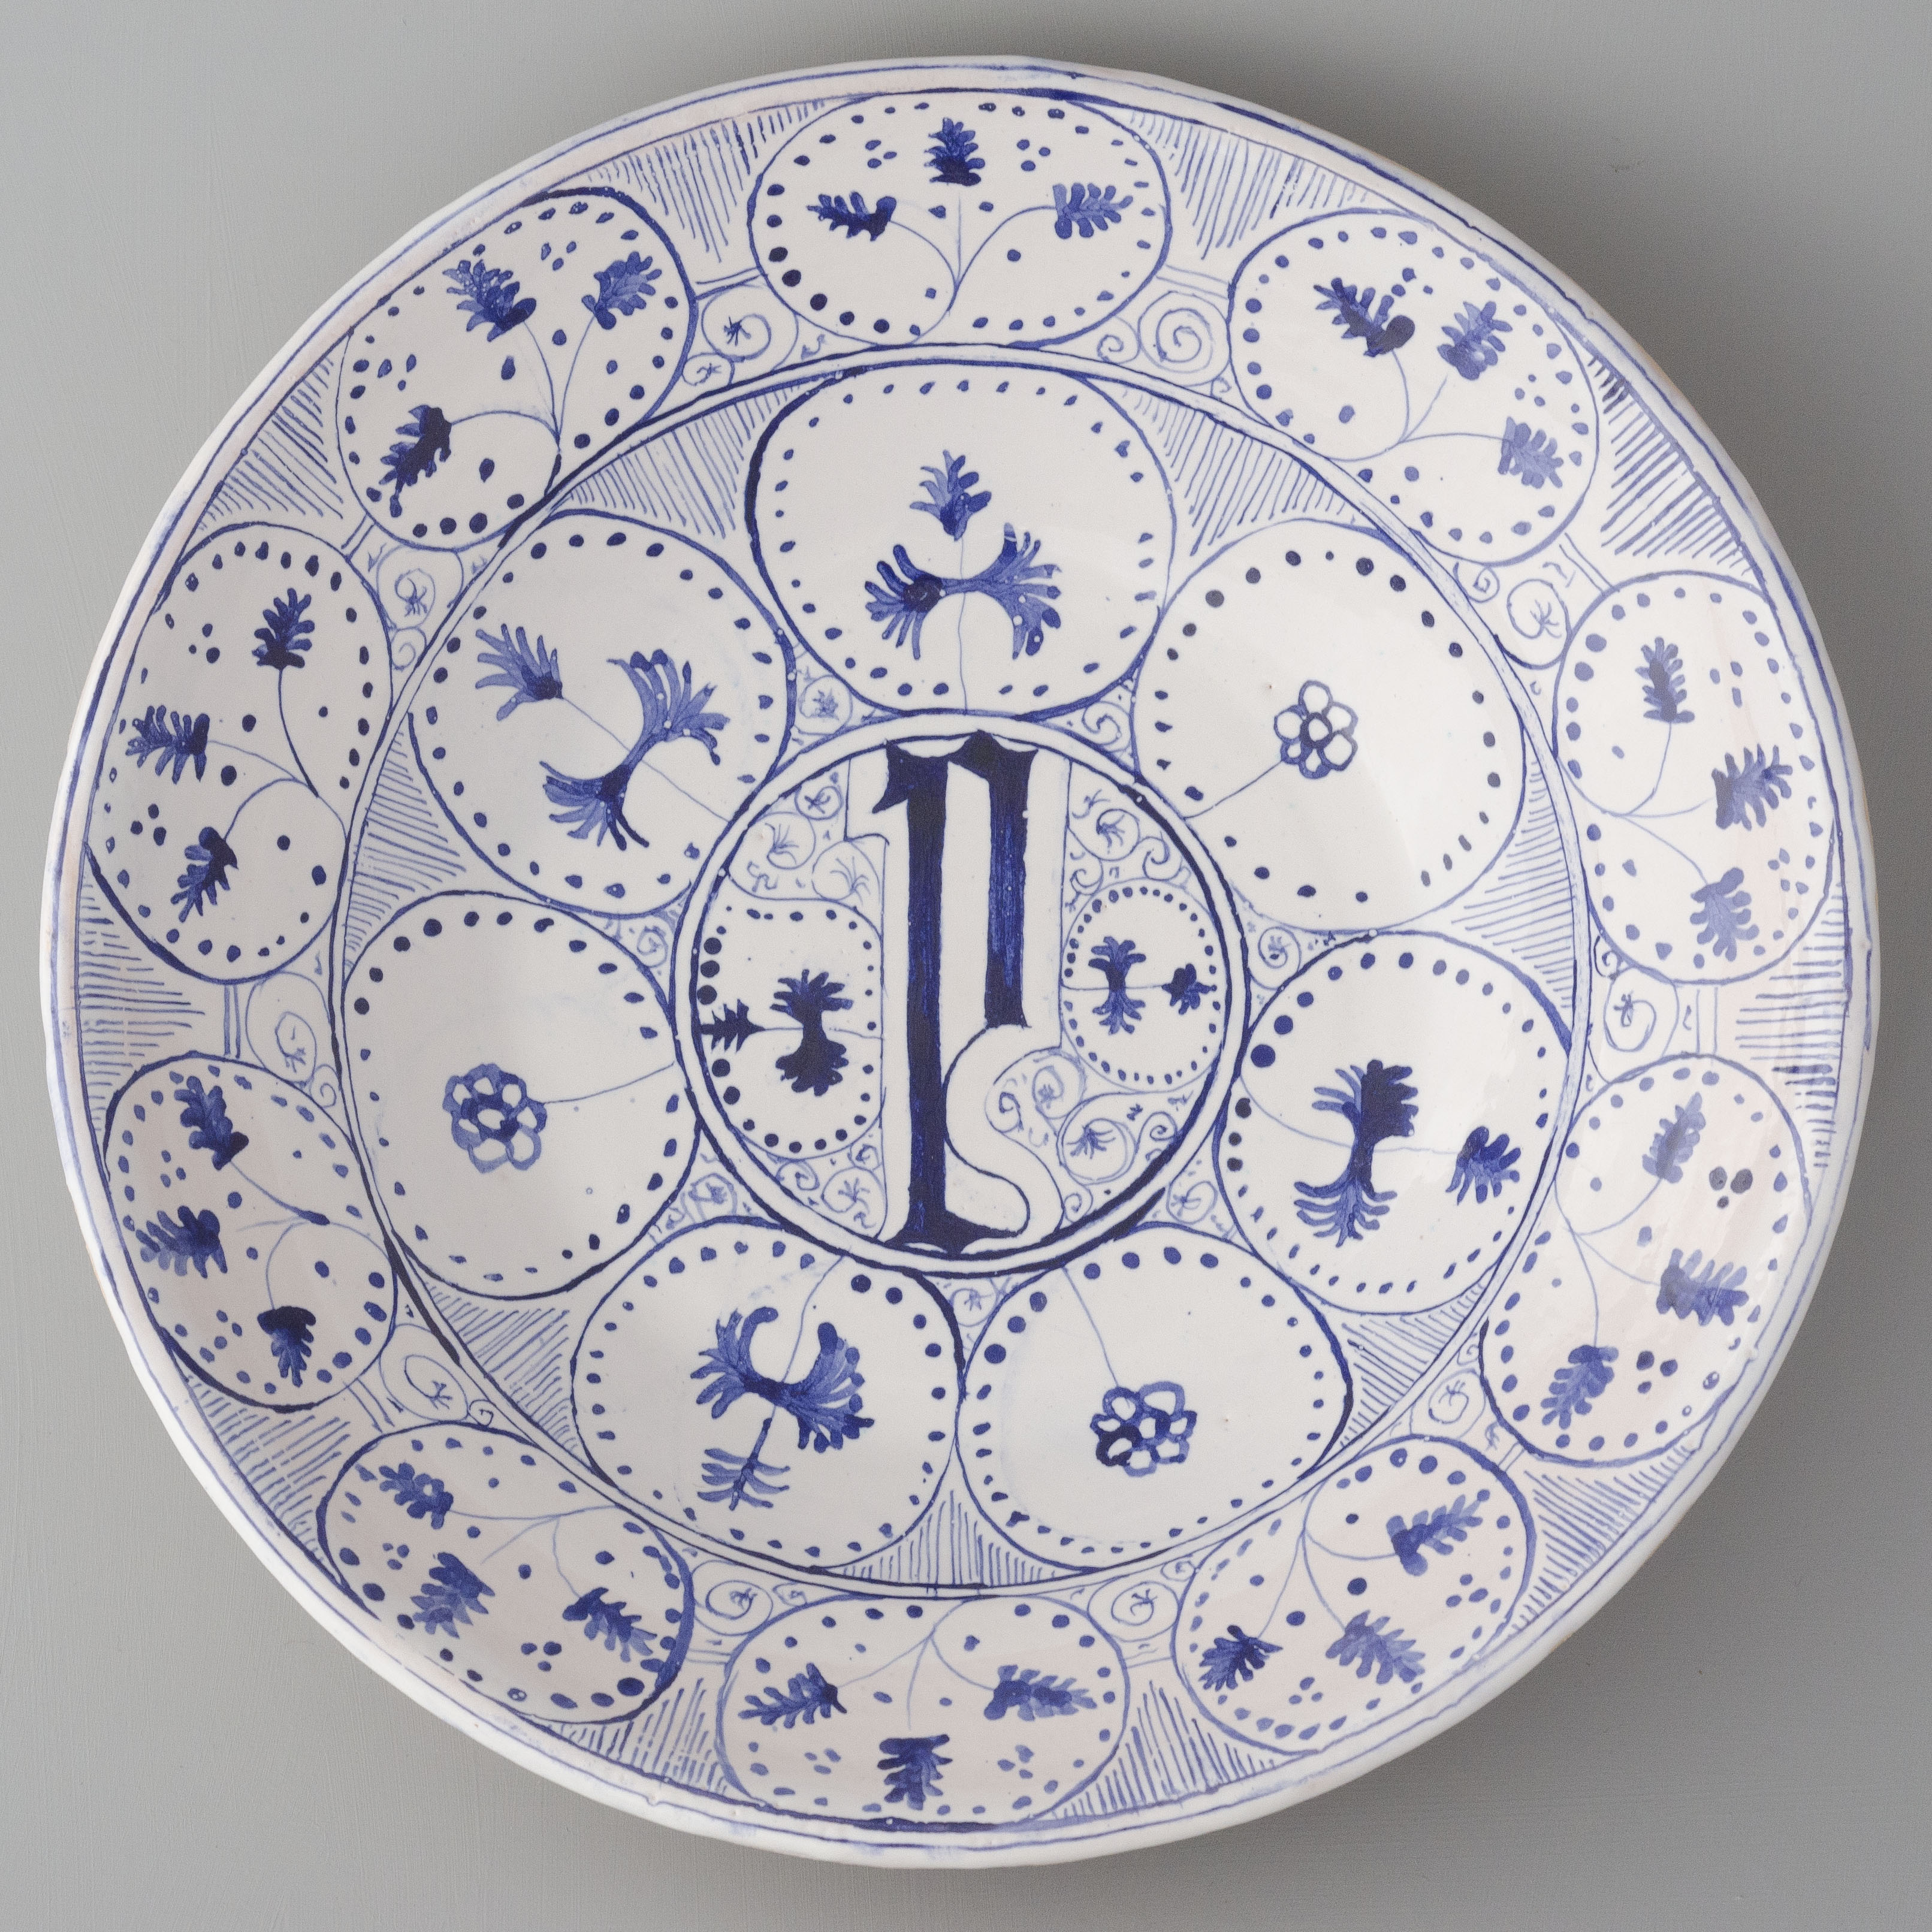 replica of a dish from Montelupo / 1460-1470